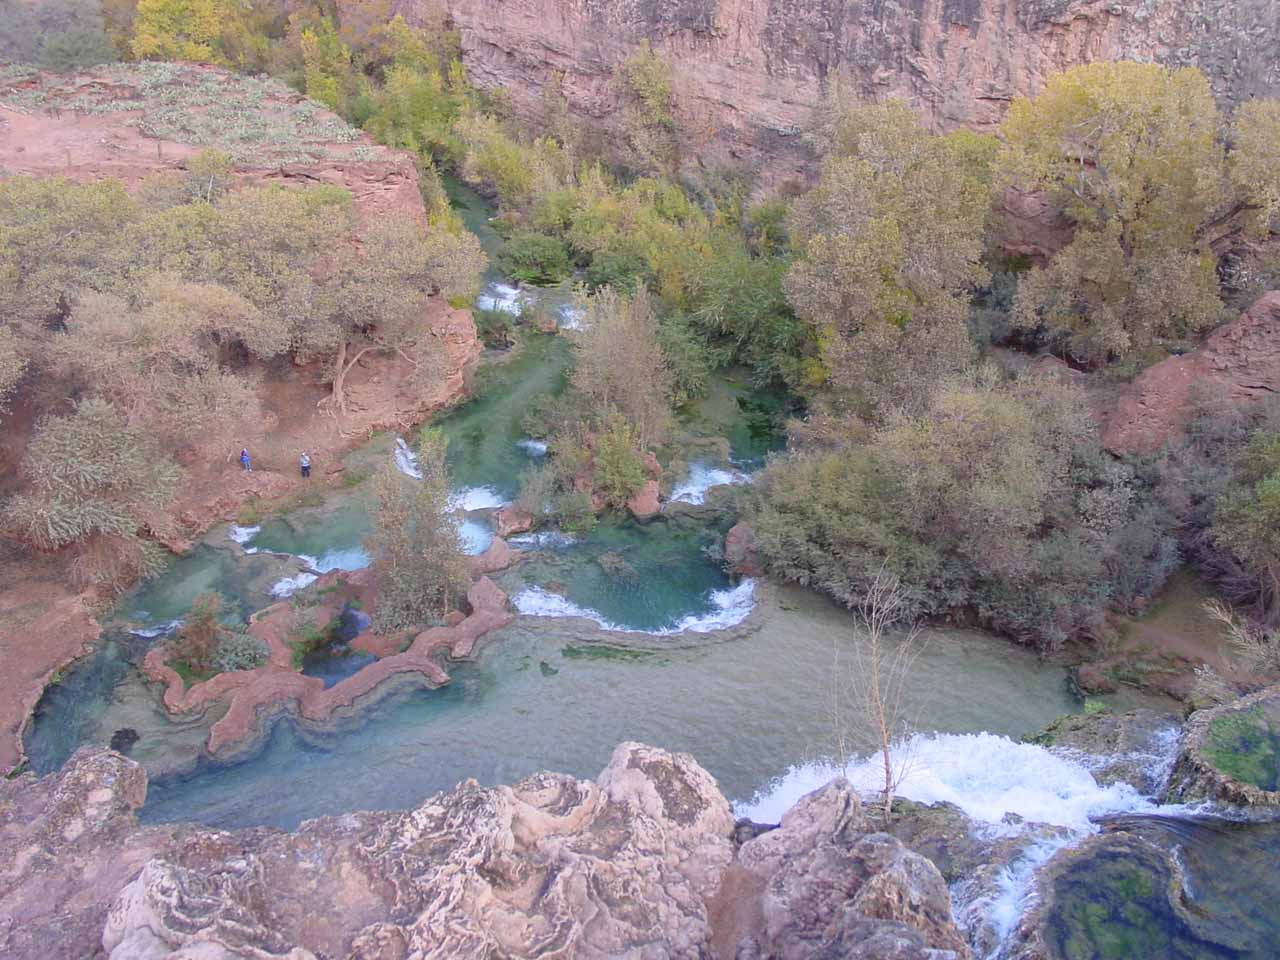 Looking down at the beautiful pools and travertine dams from the brink of Havasu Falls in November 2002